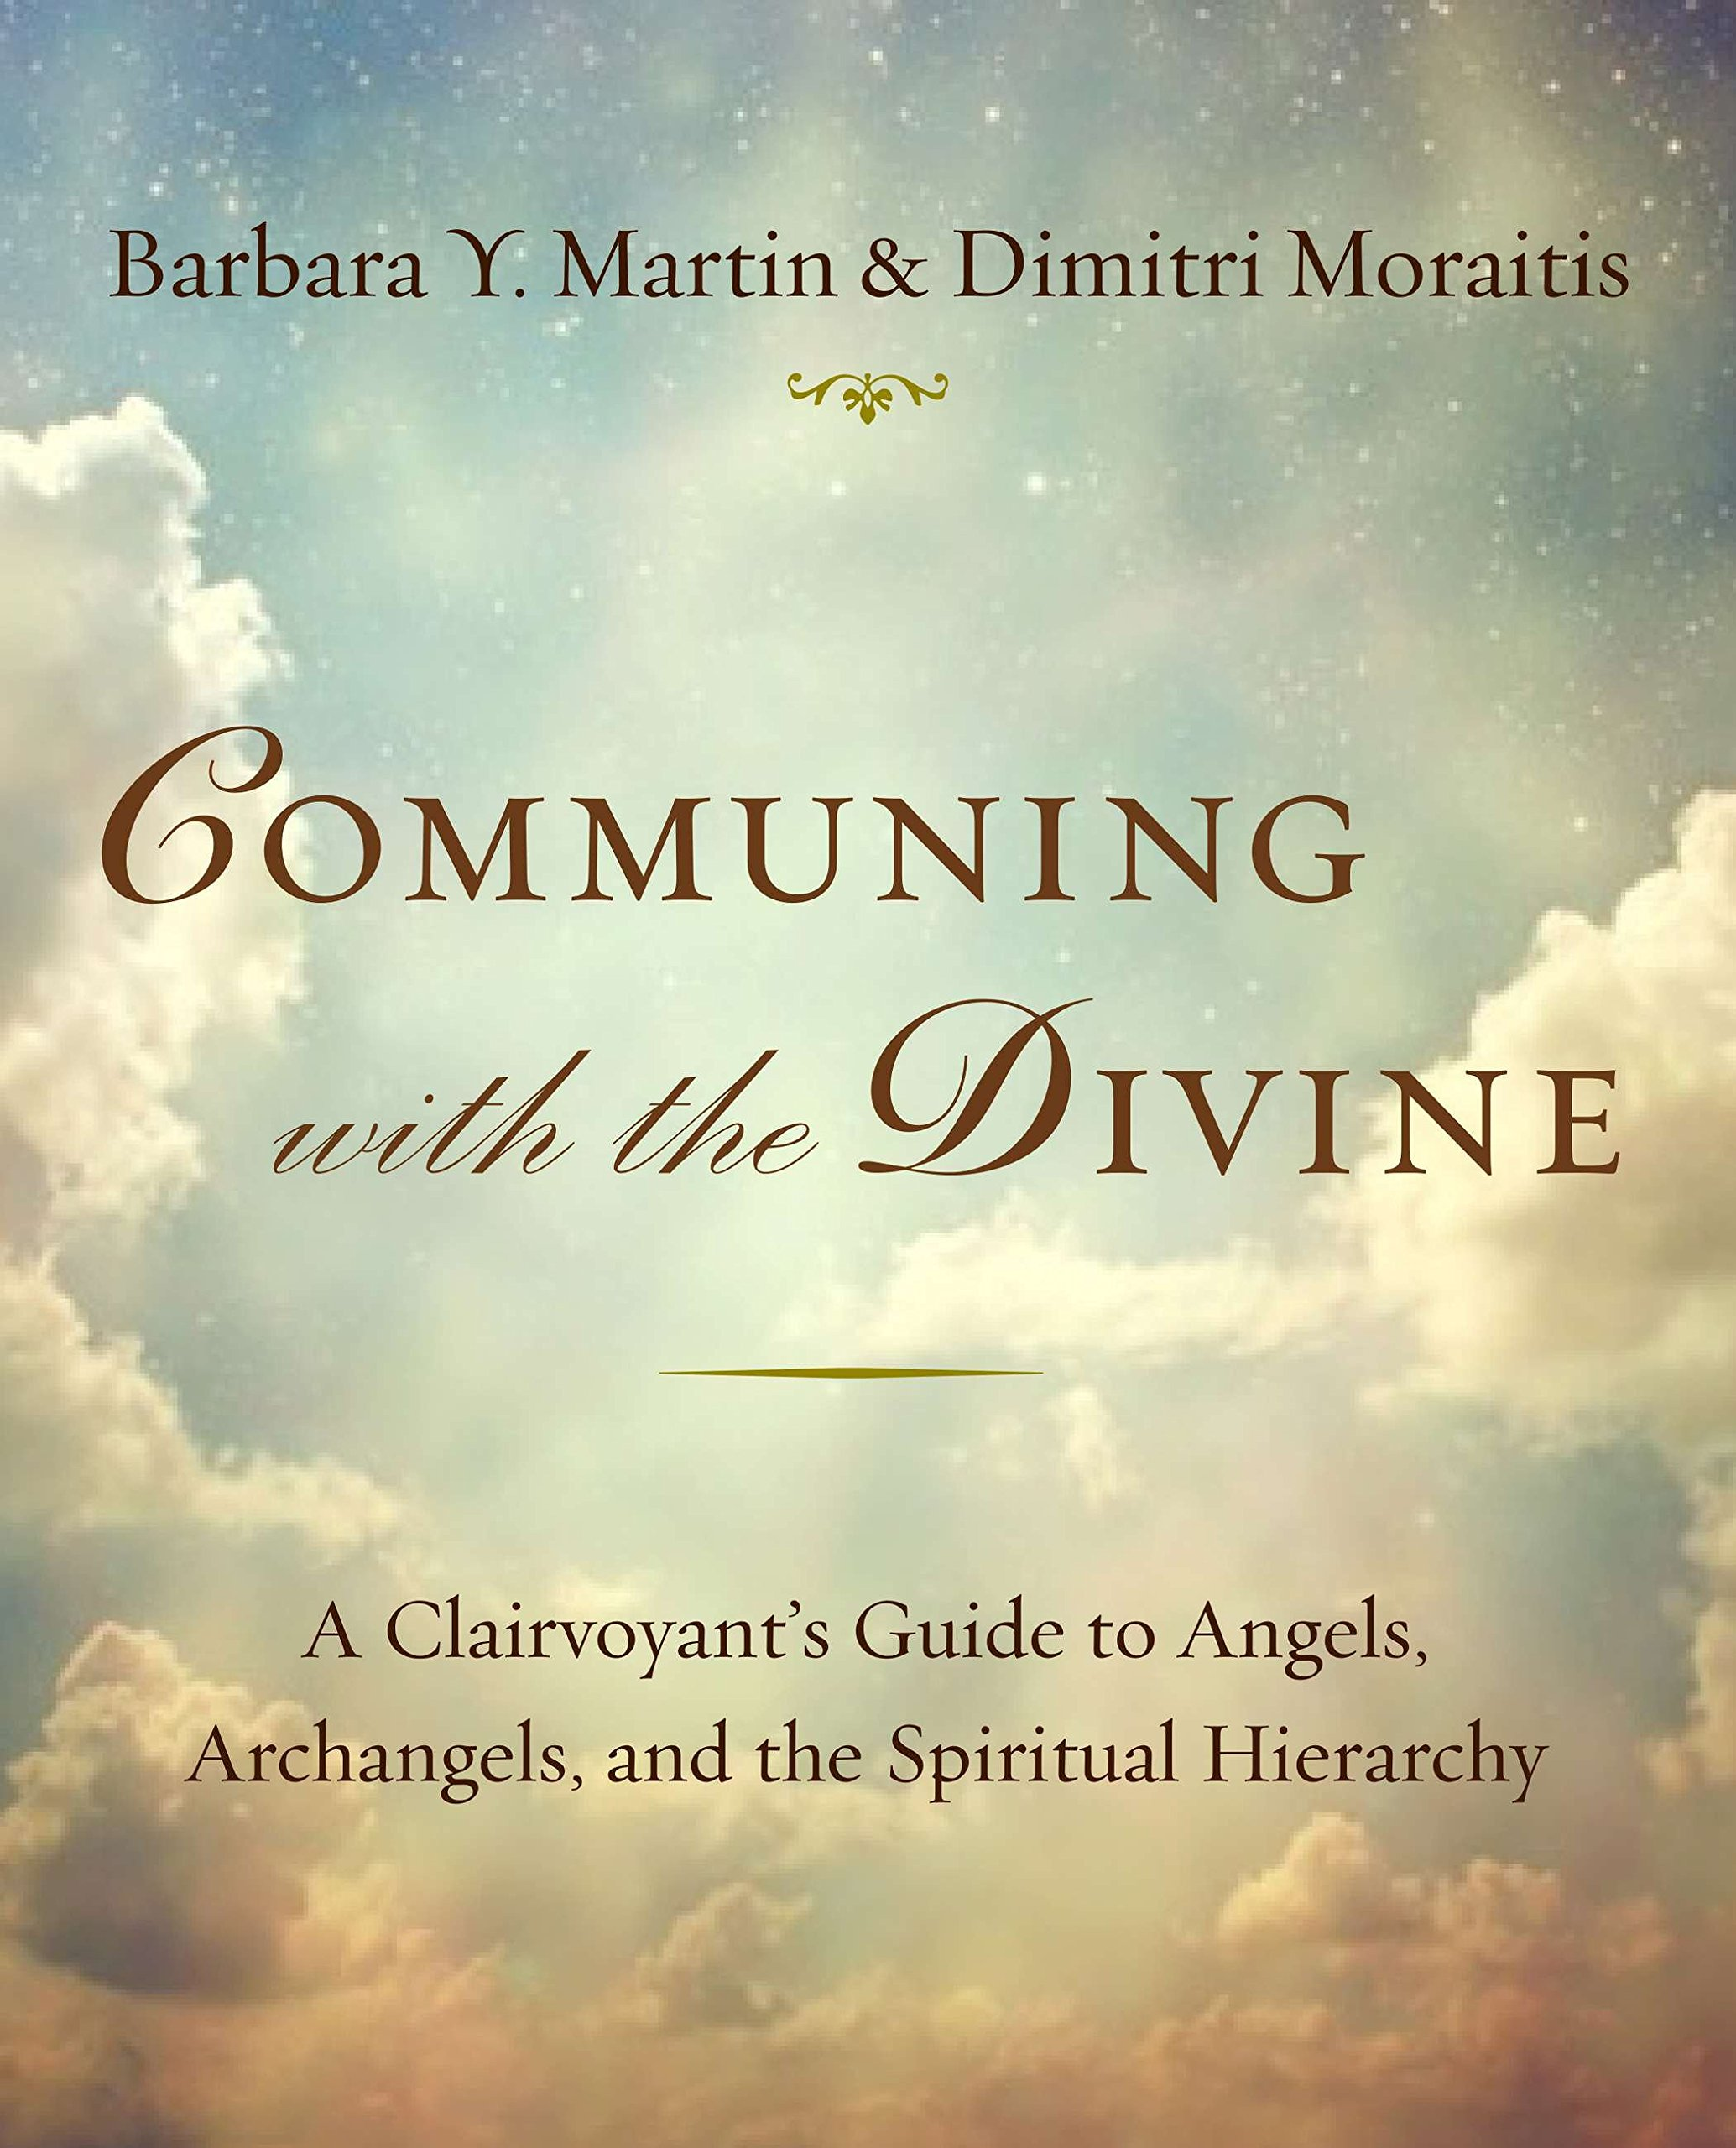 Download Communing with the Divine: A Clairvoyant's Guide to Angels, Archangels, and the Spiritual Hierarchy pdf